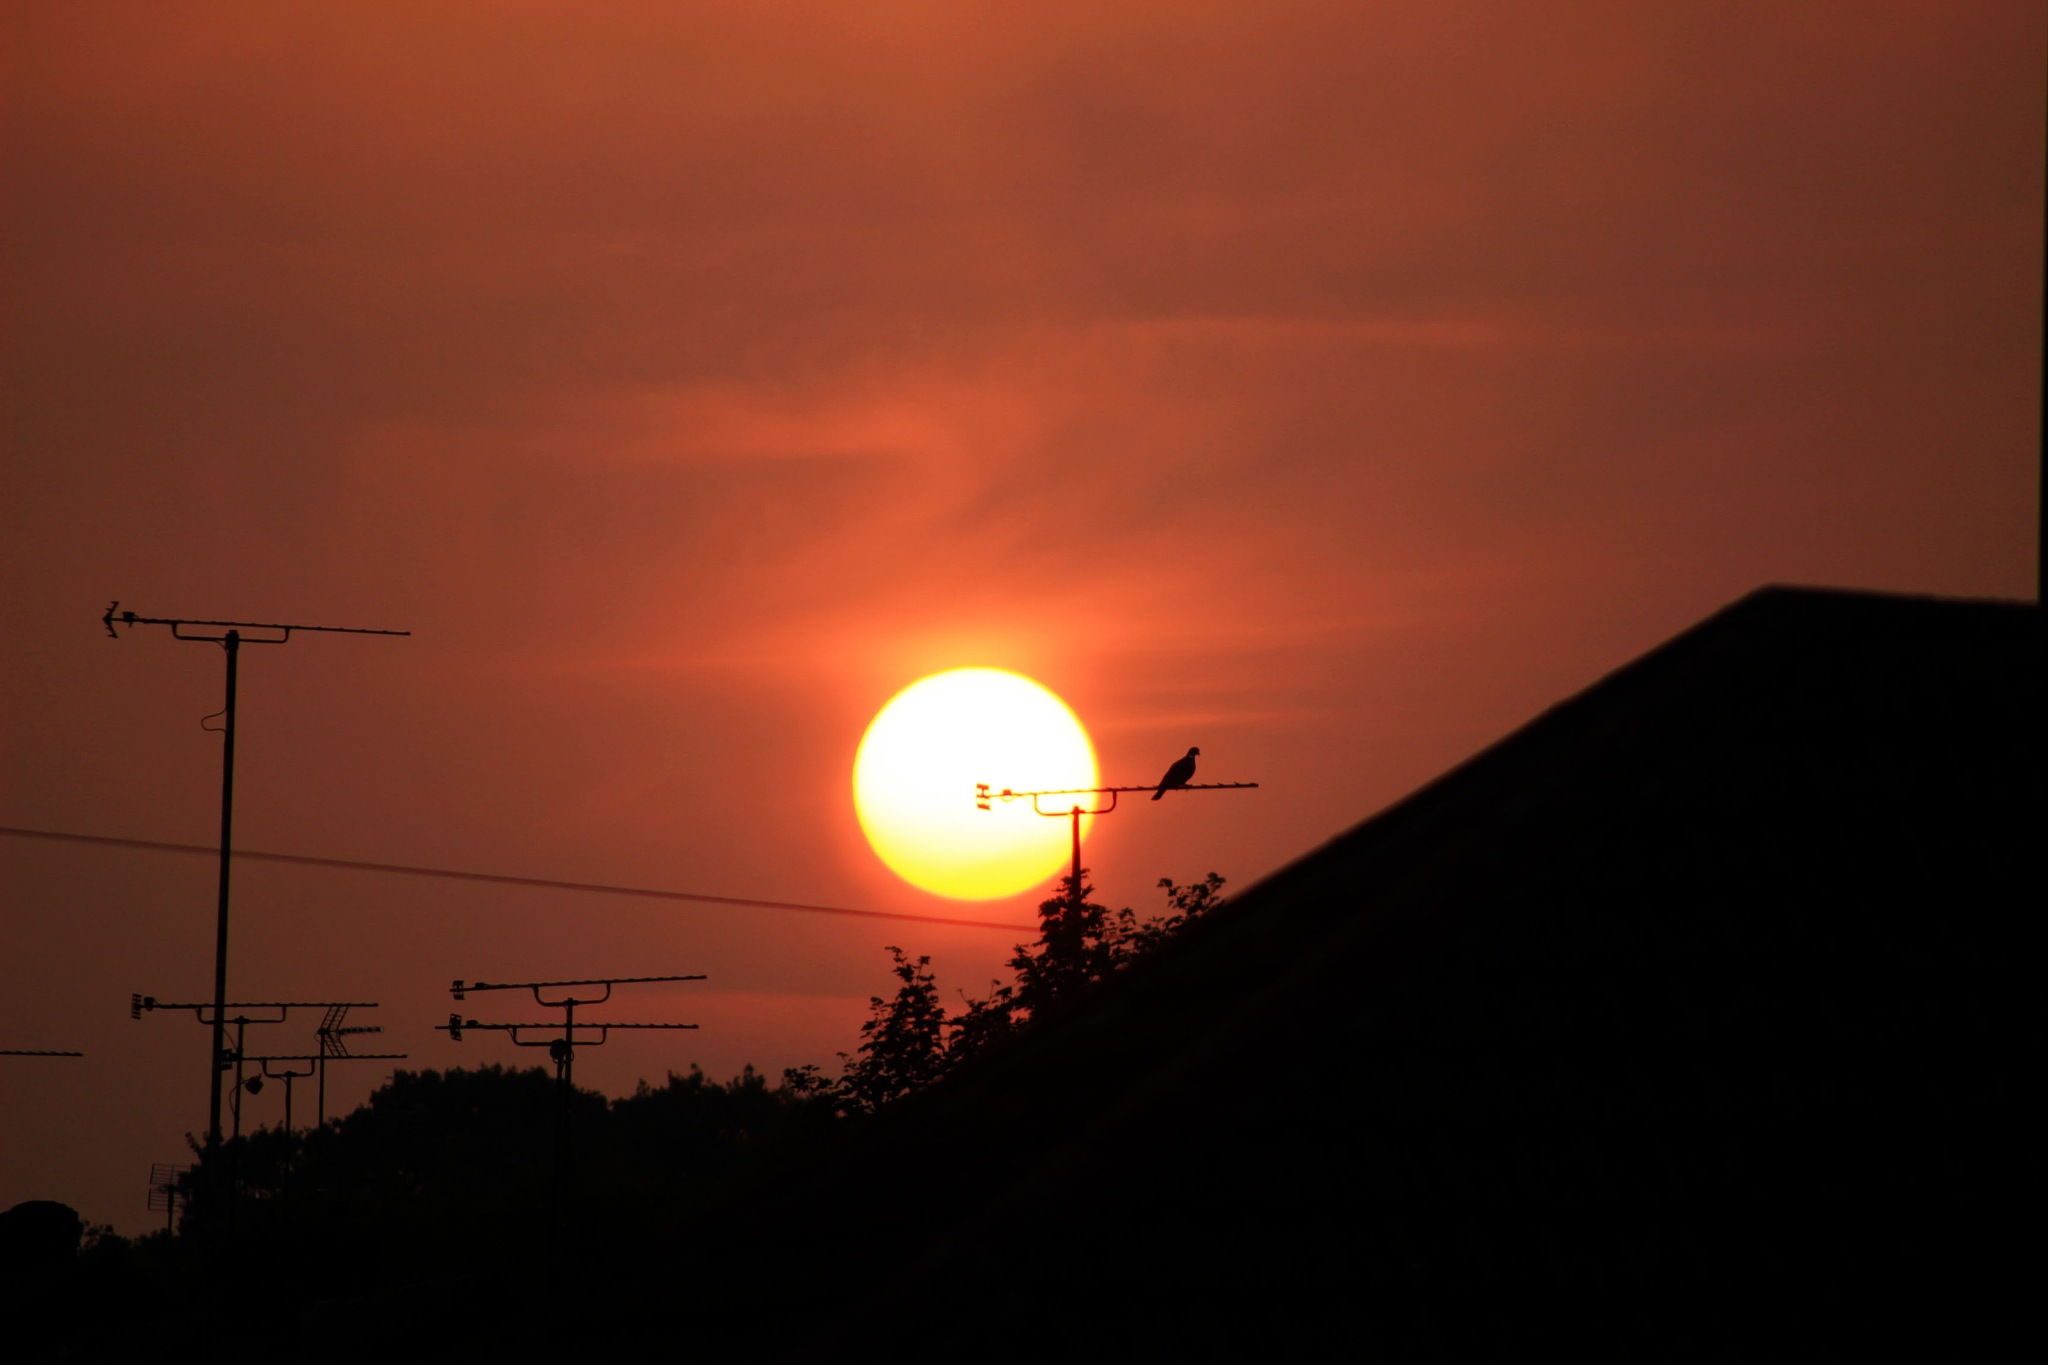 The Bird and the Burning Sun by Mark Pemberton